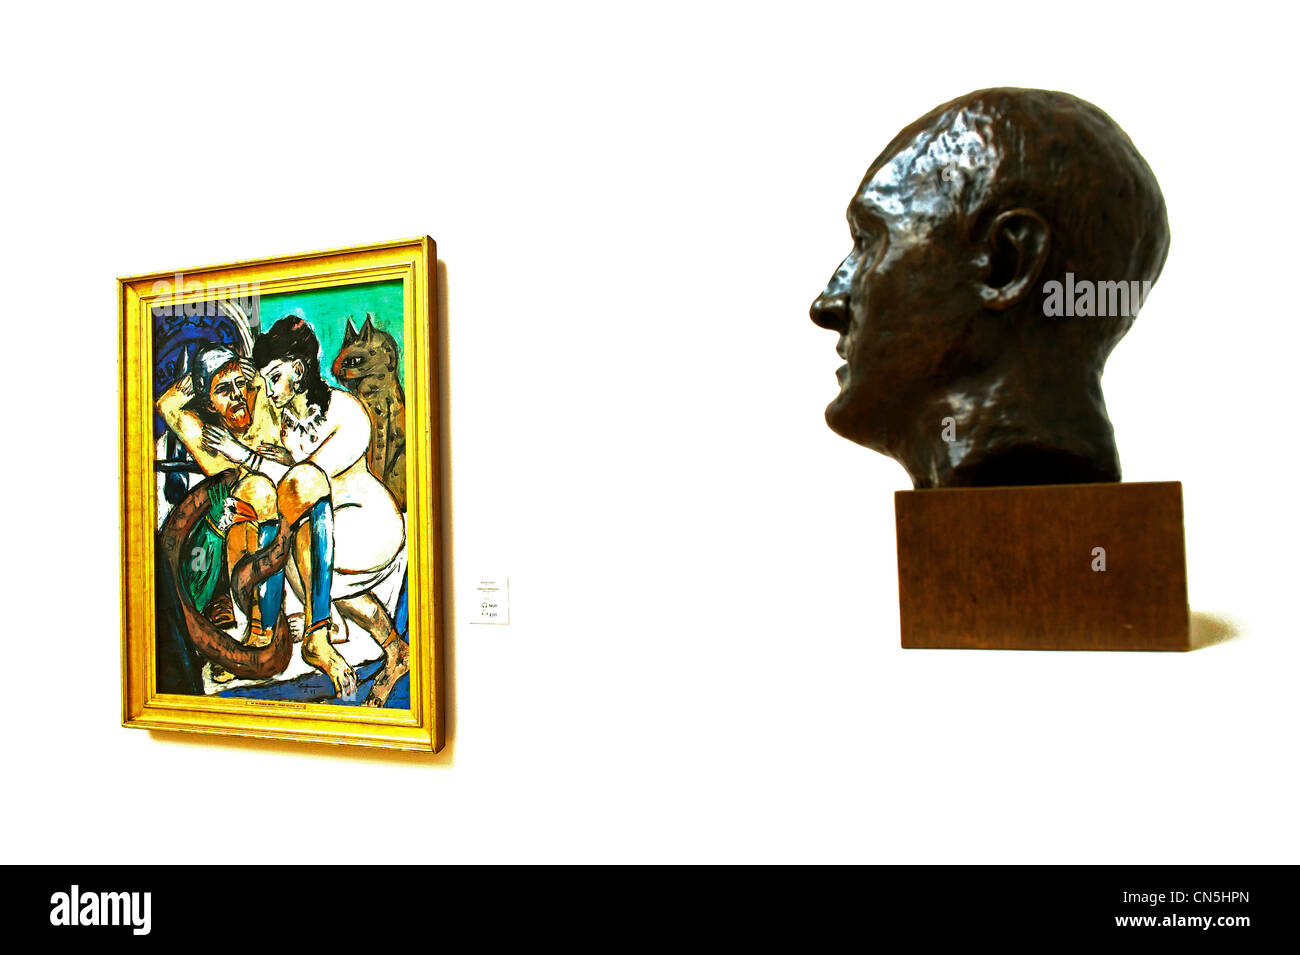 Germany, Hamburg, European Green Capital 2011, Kunsthalle, museum of Fine Arts, Self Portrait (1936) and Ulysses - Stock Image